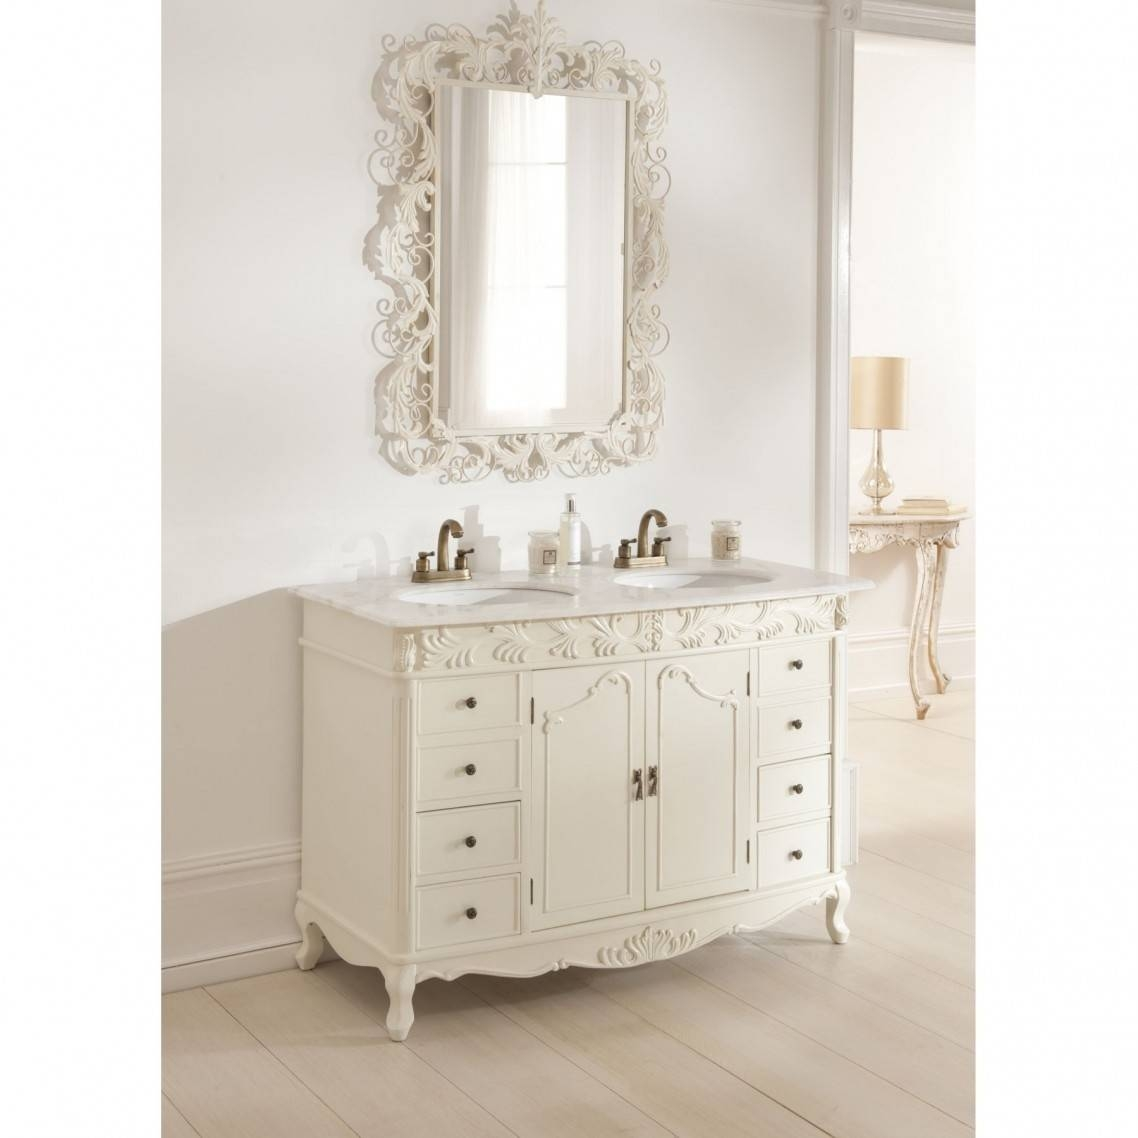 Mirror : French Style Bathroom Mirrors Home With Regard To French within French Style Bathroom Mirrors (Image 15 of 15)